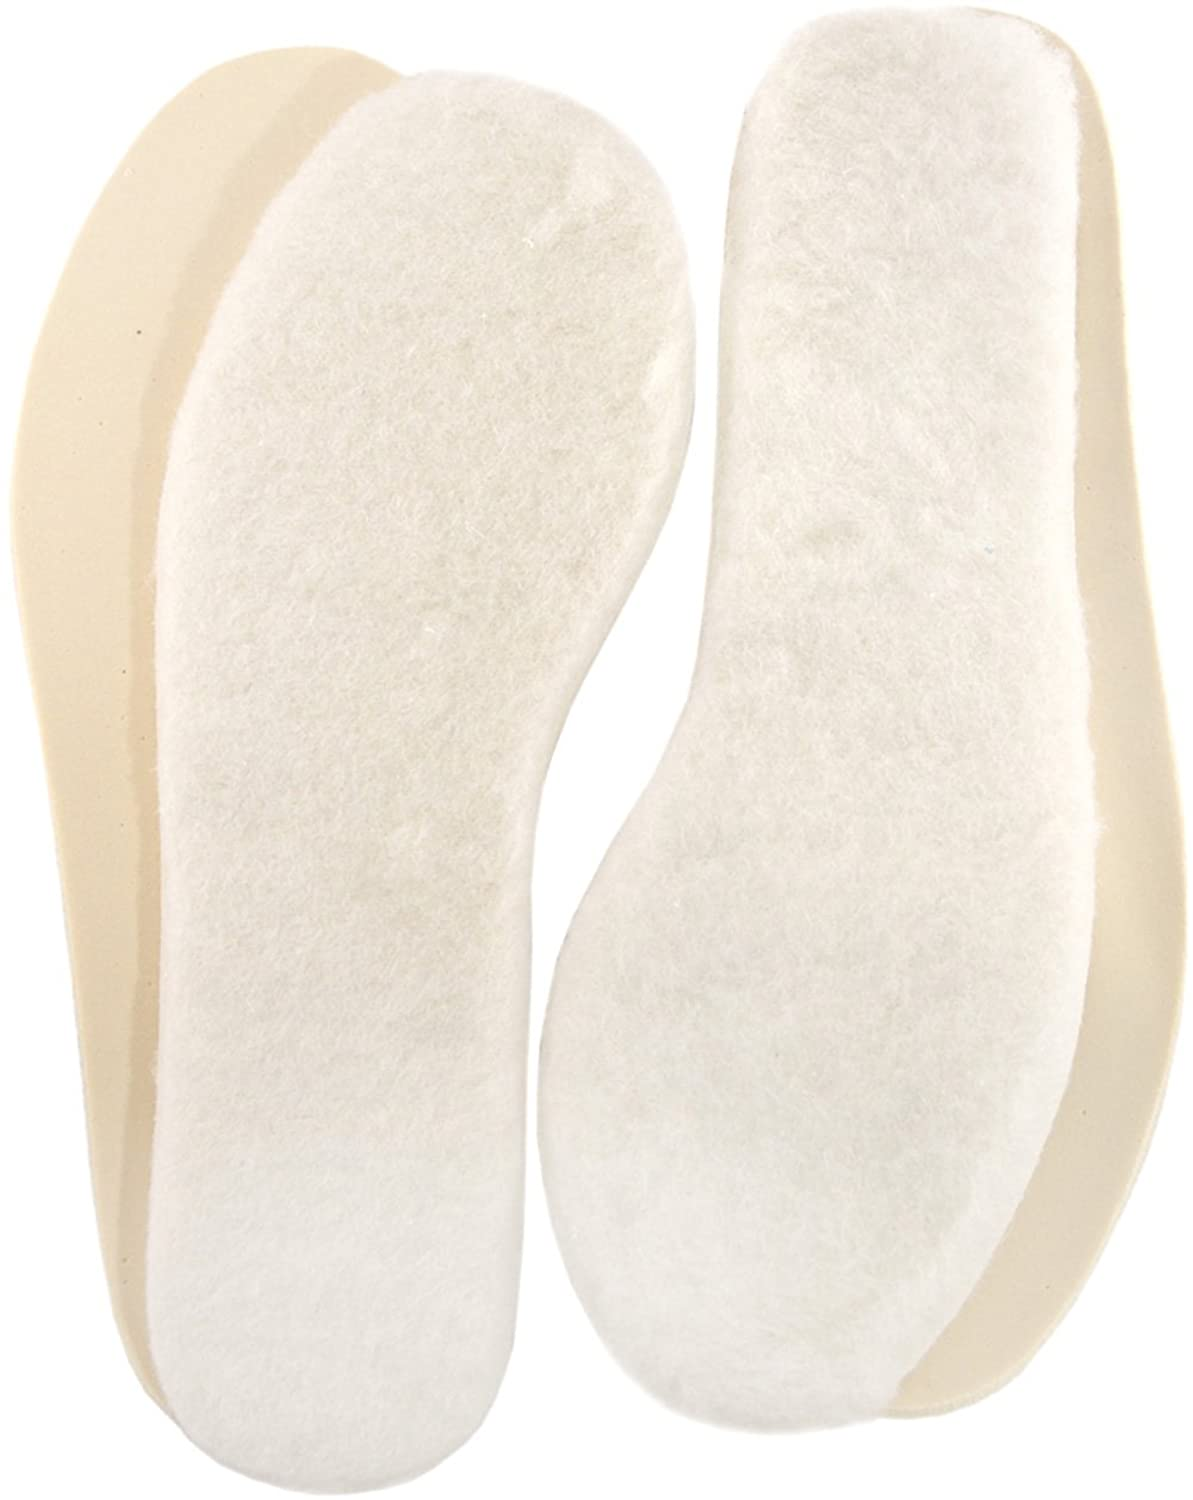 100/% Lambs Wool from Sheepskin 2x Pairs of Lambswool Insoles Ladies//Mens